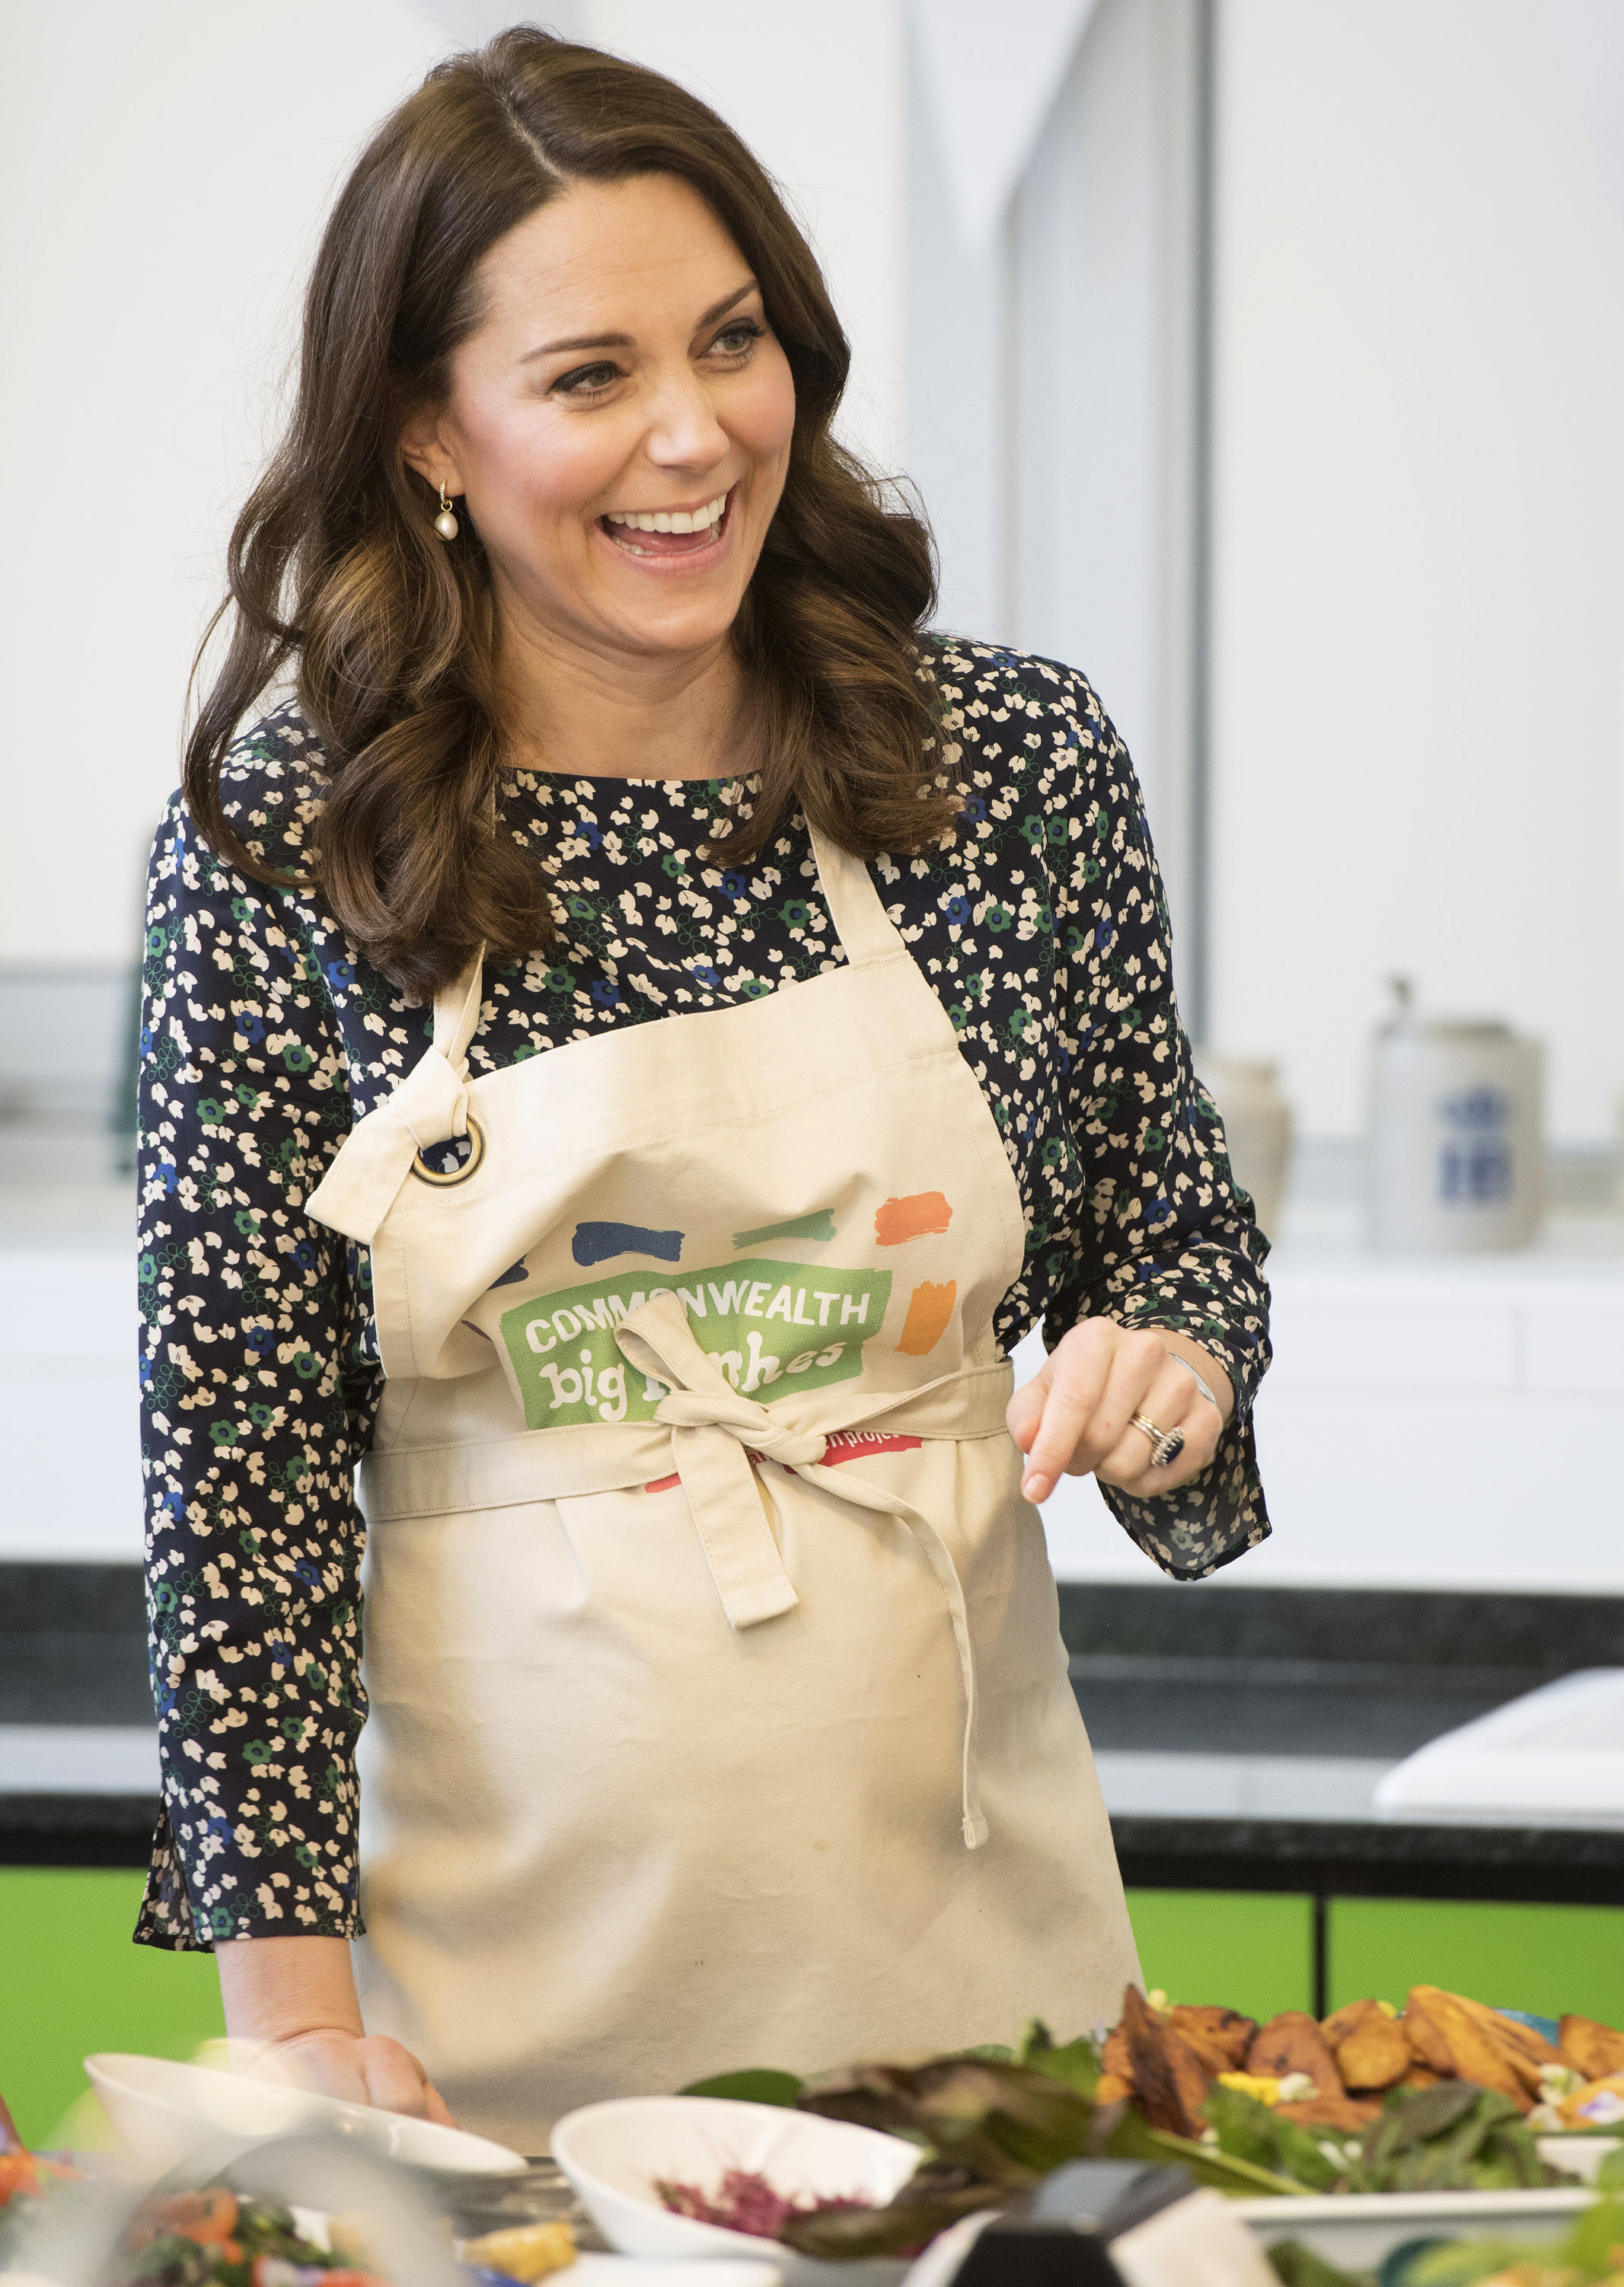 <div class='meta'><div class='origin-logo' data-origin='none'></div><span class='caption-text' data-credit='Paul Edwards/ Pool via AP'>Britain's Kate Duchess of Cambridge taking part in preparations for a Commonwealth Big Lunch at St Luke's Community Centre, London, Thursday March 22, 2018.</span></div>